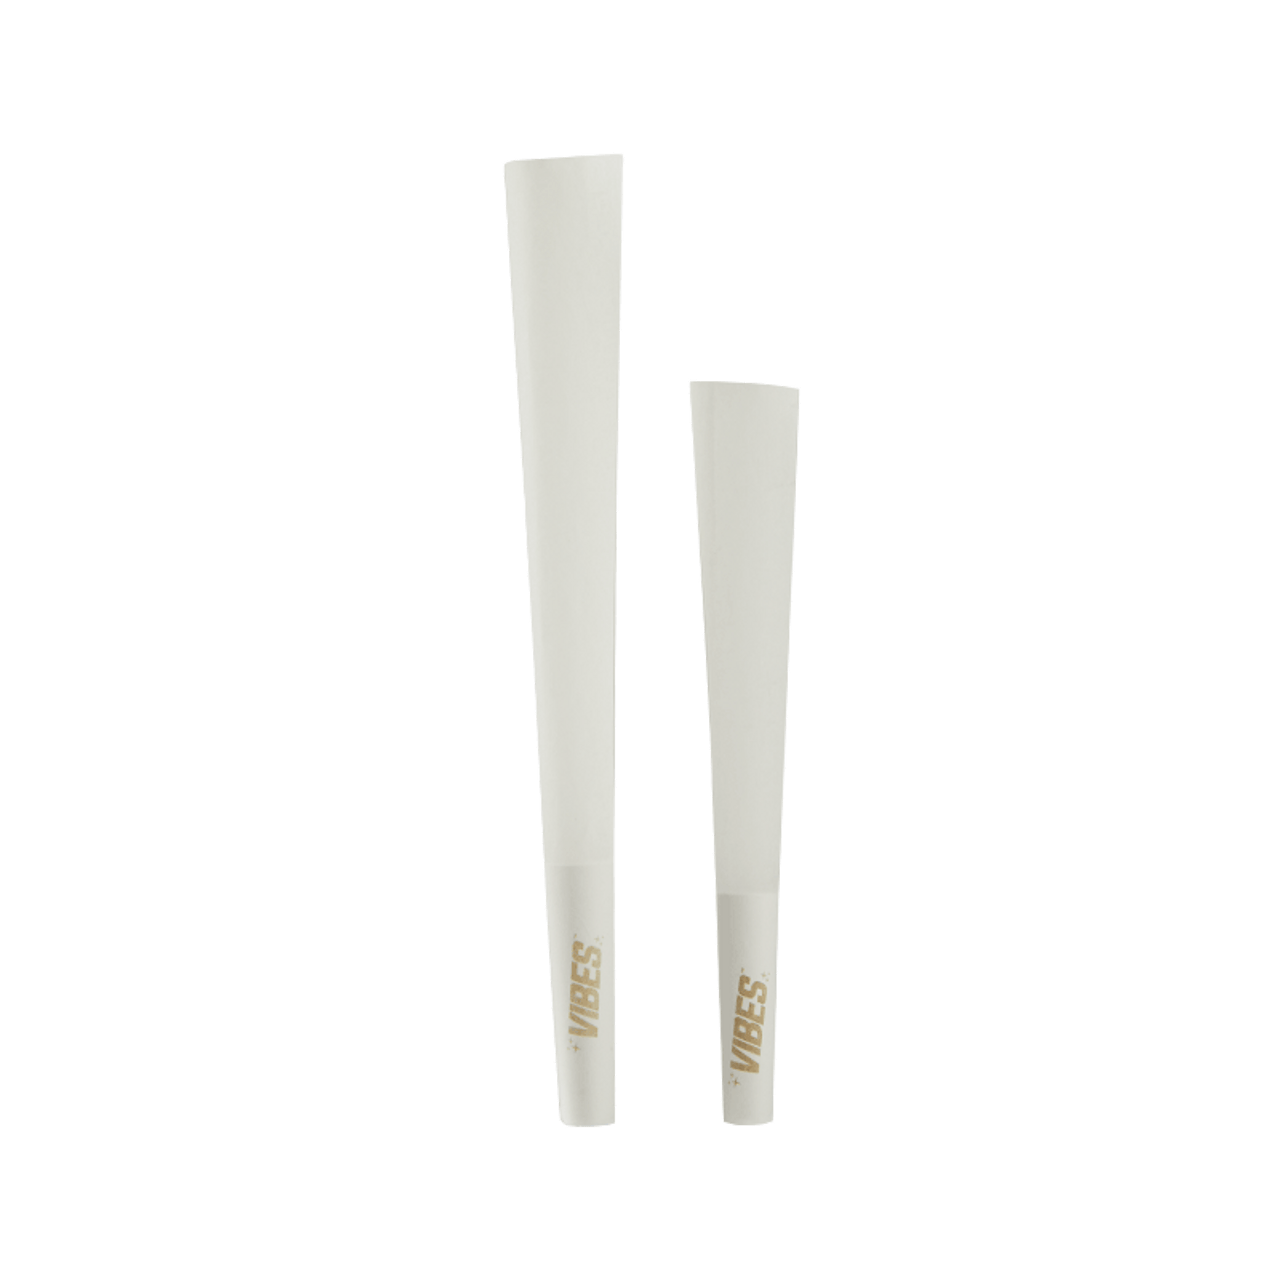 Vibes Hemp Cones Display - King Size.  Size comparison between the king size and the regular.